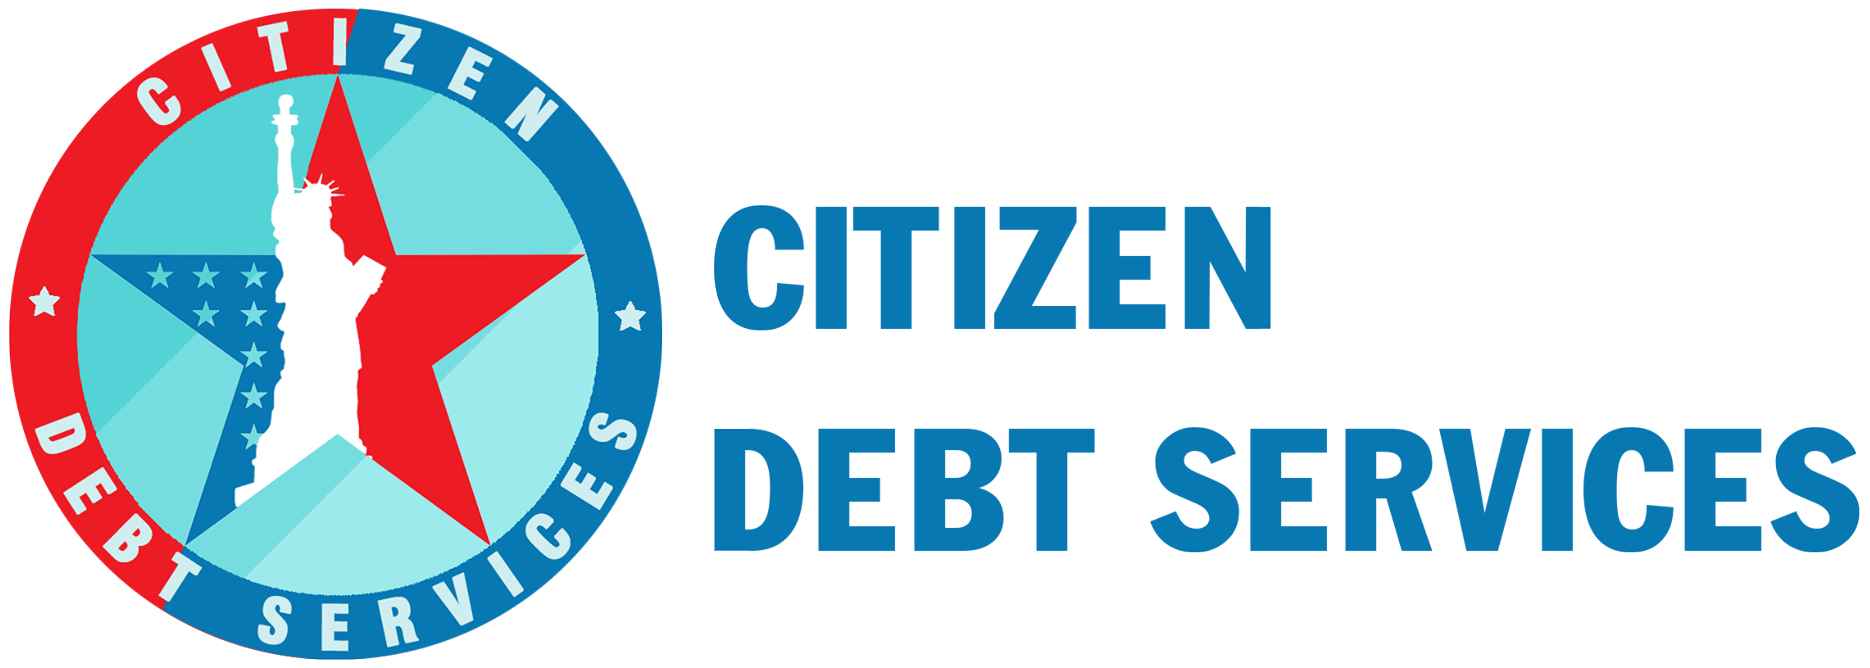 Citizen Debt Services